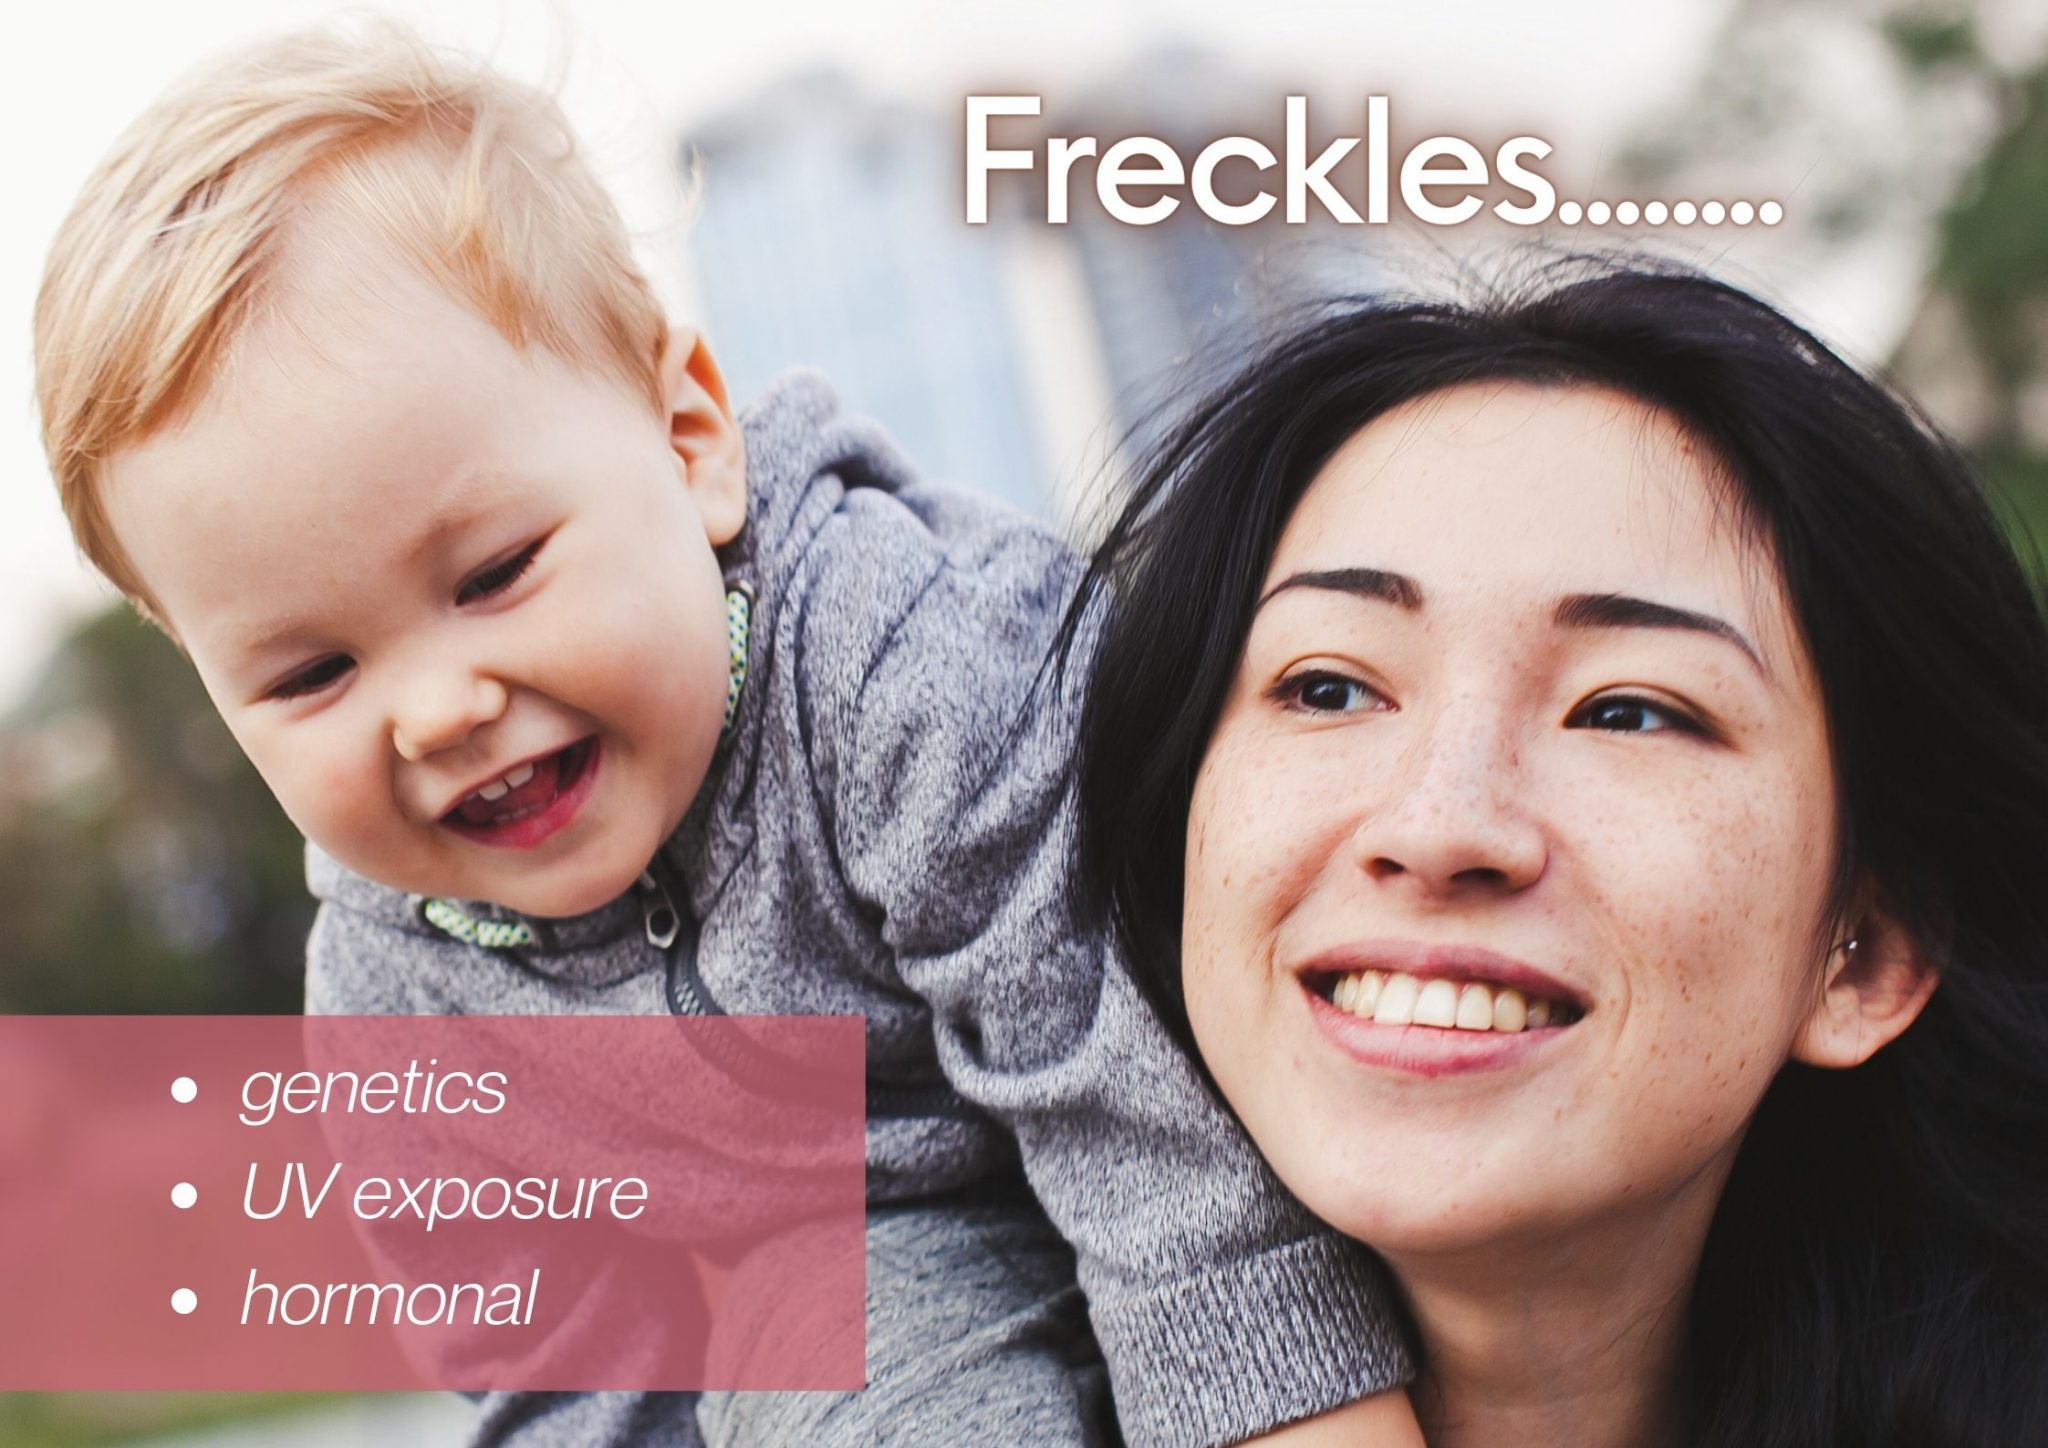 Freckles causes